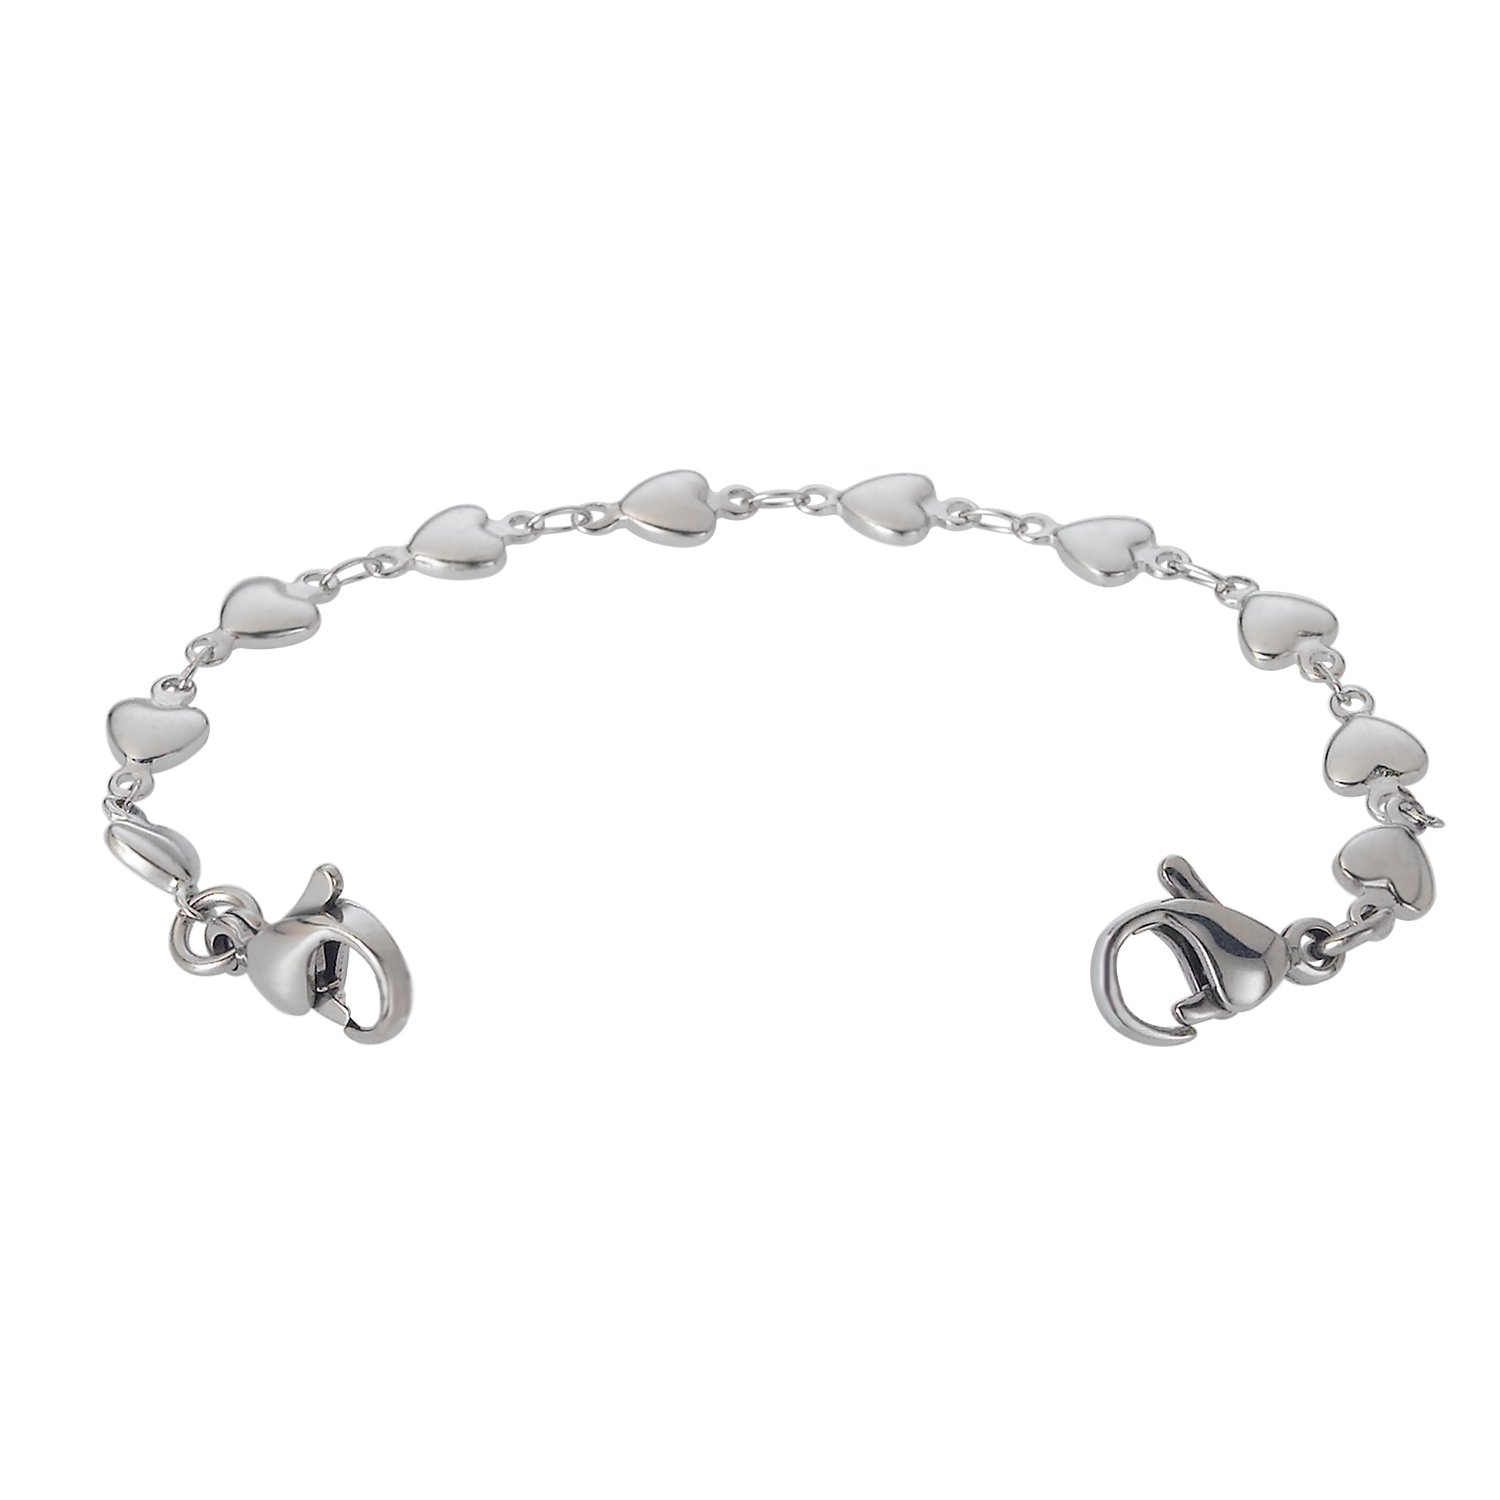 Divoti Heart Link Stainless Medical Alert Replacement Bracelet Divoti Inc. 5585S-40